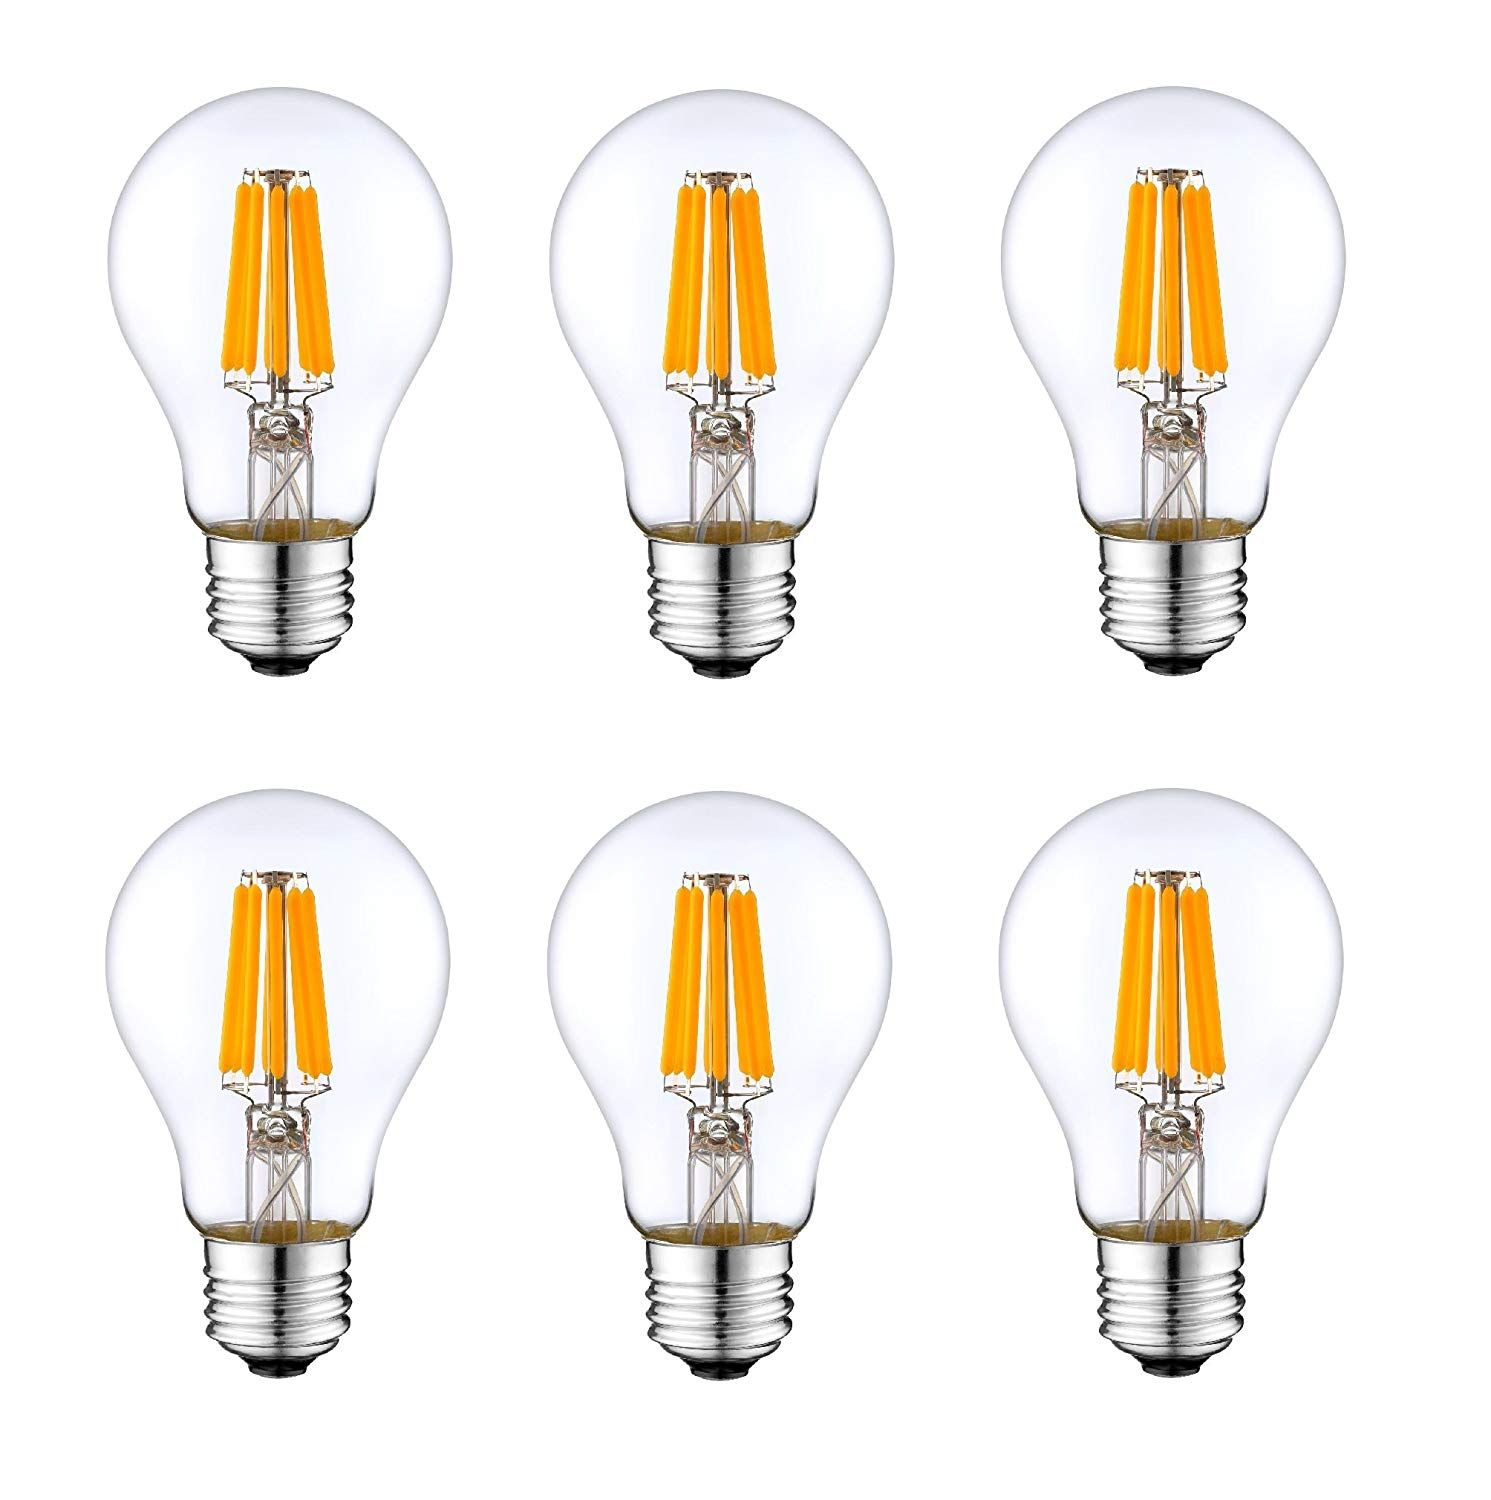 12v E26 Light Bulb A19 Warm White 3000k 4w Led Edison 12 Volt Classic Medium Base Lamp Low Voltage Battery System Rv Marine Boat Sol Bulb Light Bulb Warm White